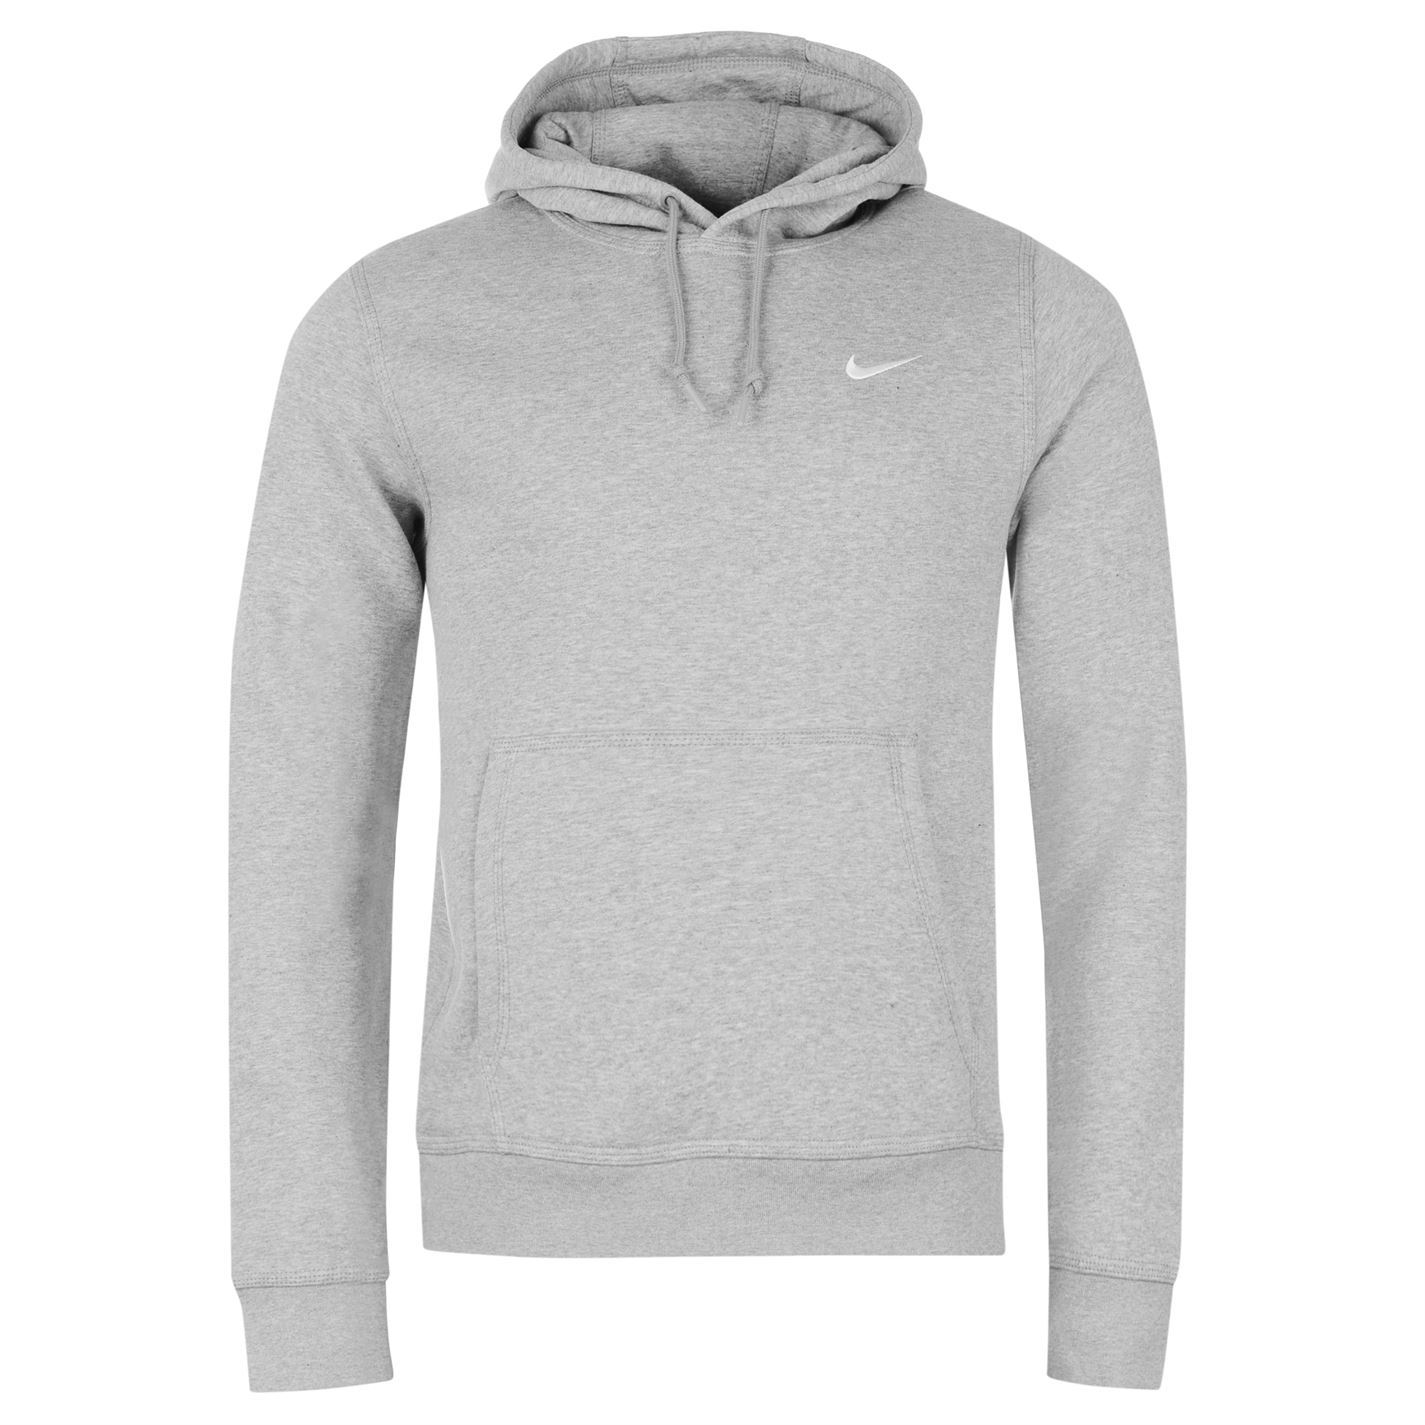 Nike-Fundamentals-Fleece-Lined-Pullover-Hoody-Mens-OTH-Hoodie-Sweatshirt-Sweater thumbnail 16